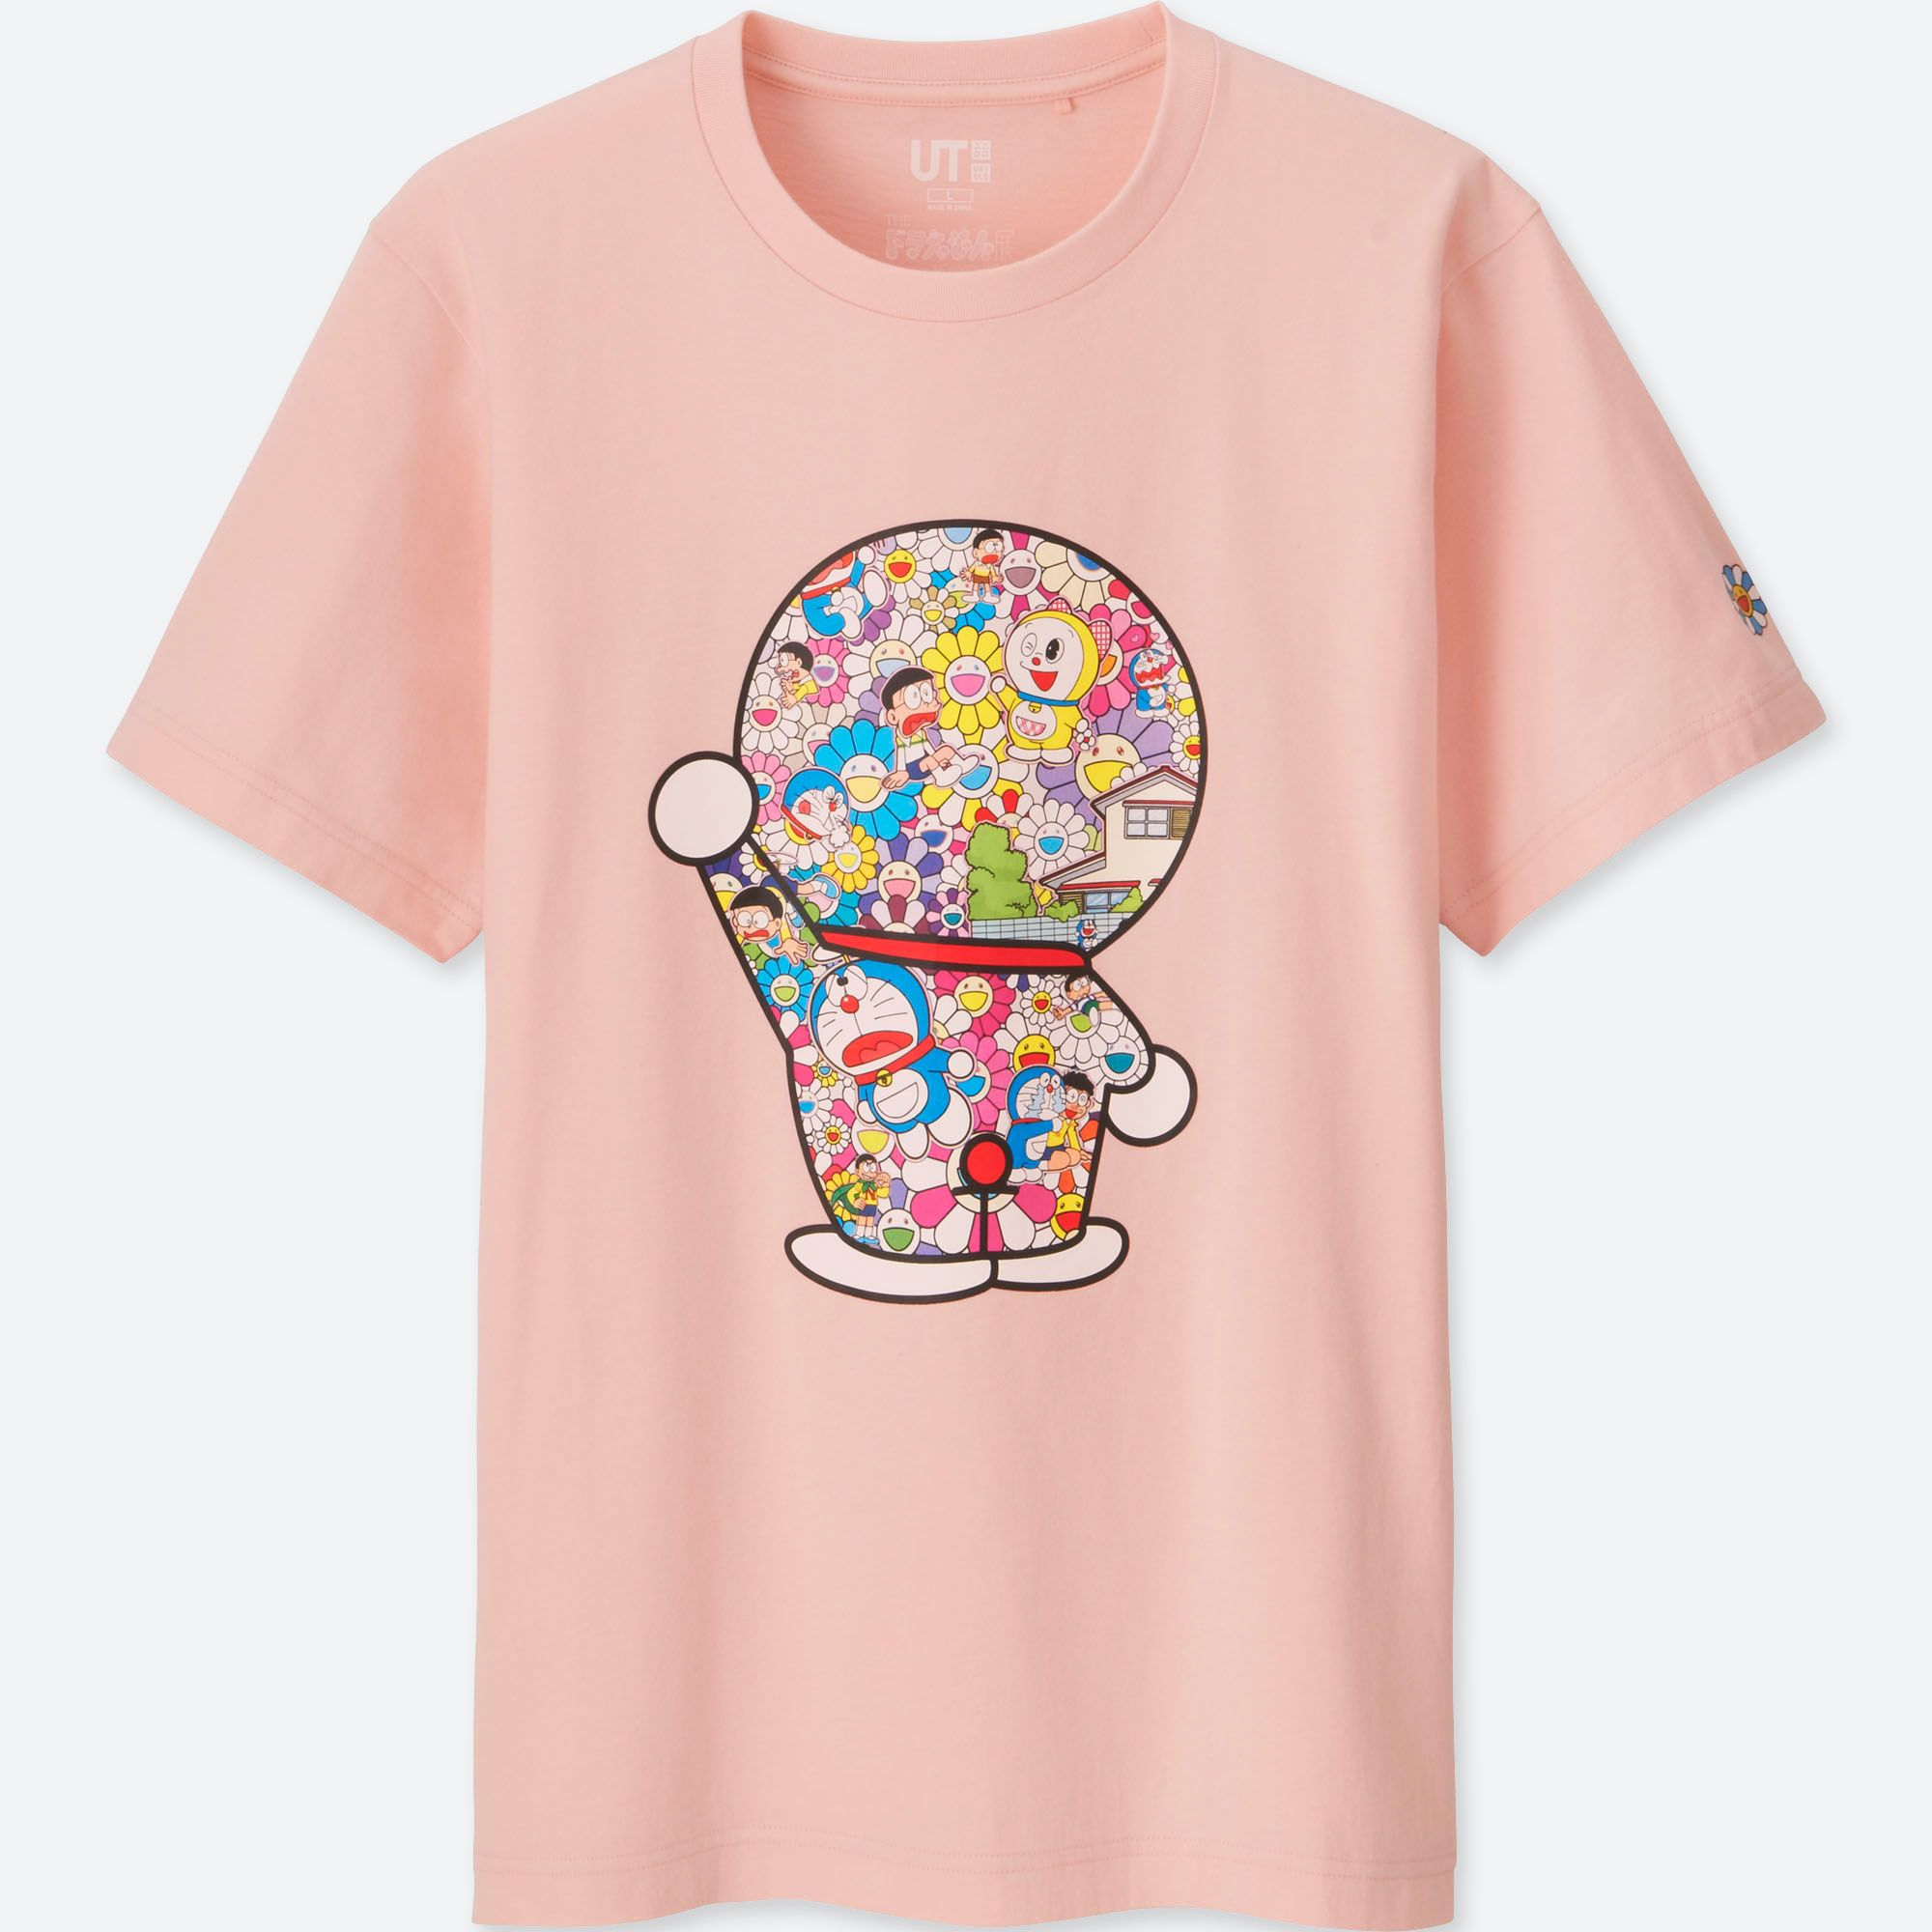 Uniqlo's Doraemon x Murakami Line is a Match Made in Kawaii Heaven